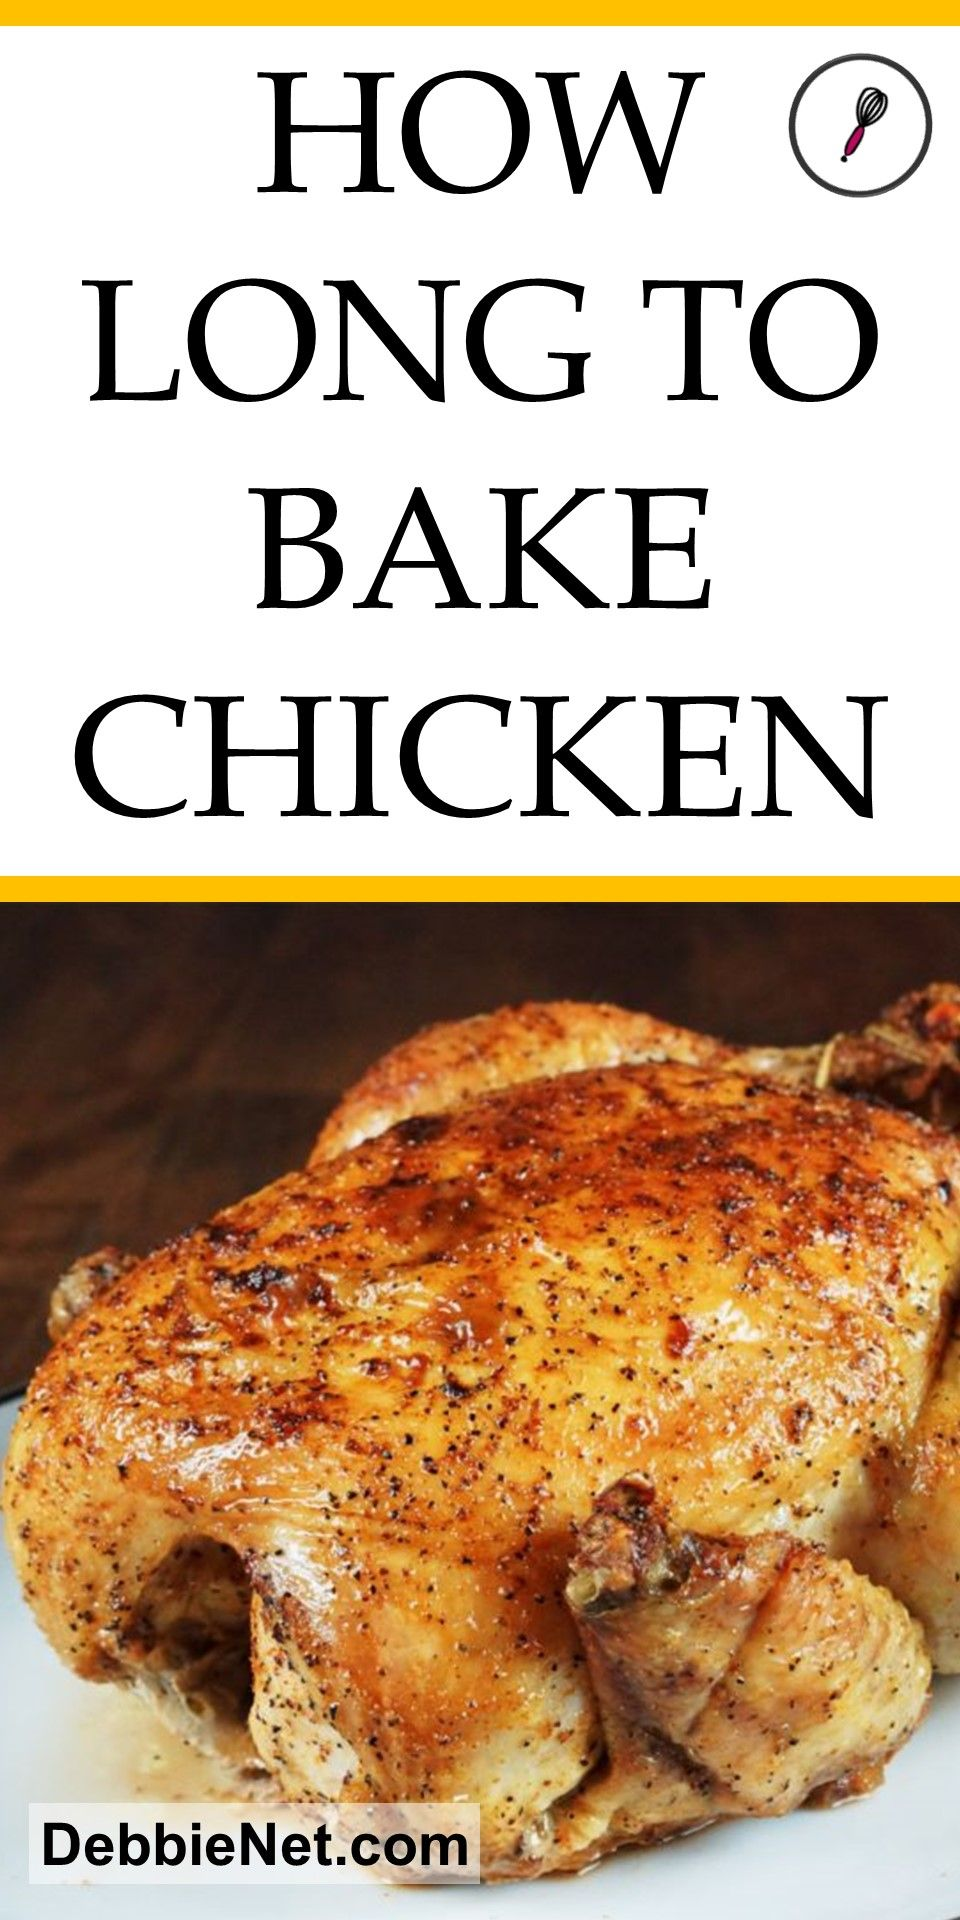 How Long To Bake Chicken Debbienet Com Baked Whole Chicken Recipes Whole Chicken Recipes Oven Cooking Whole Chicken